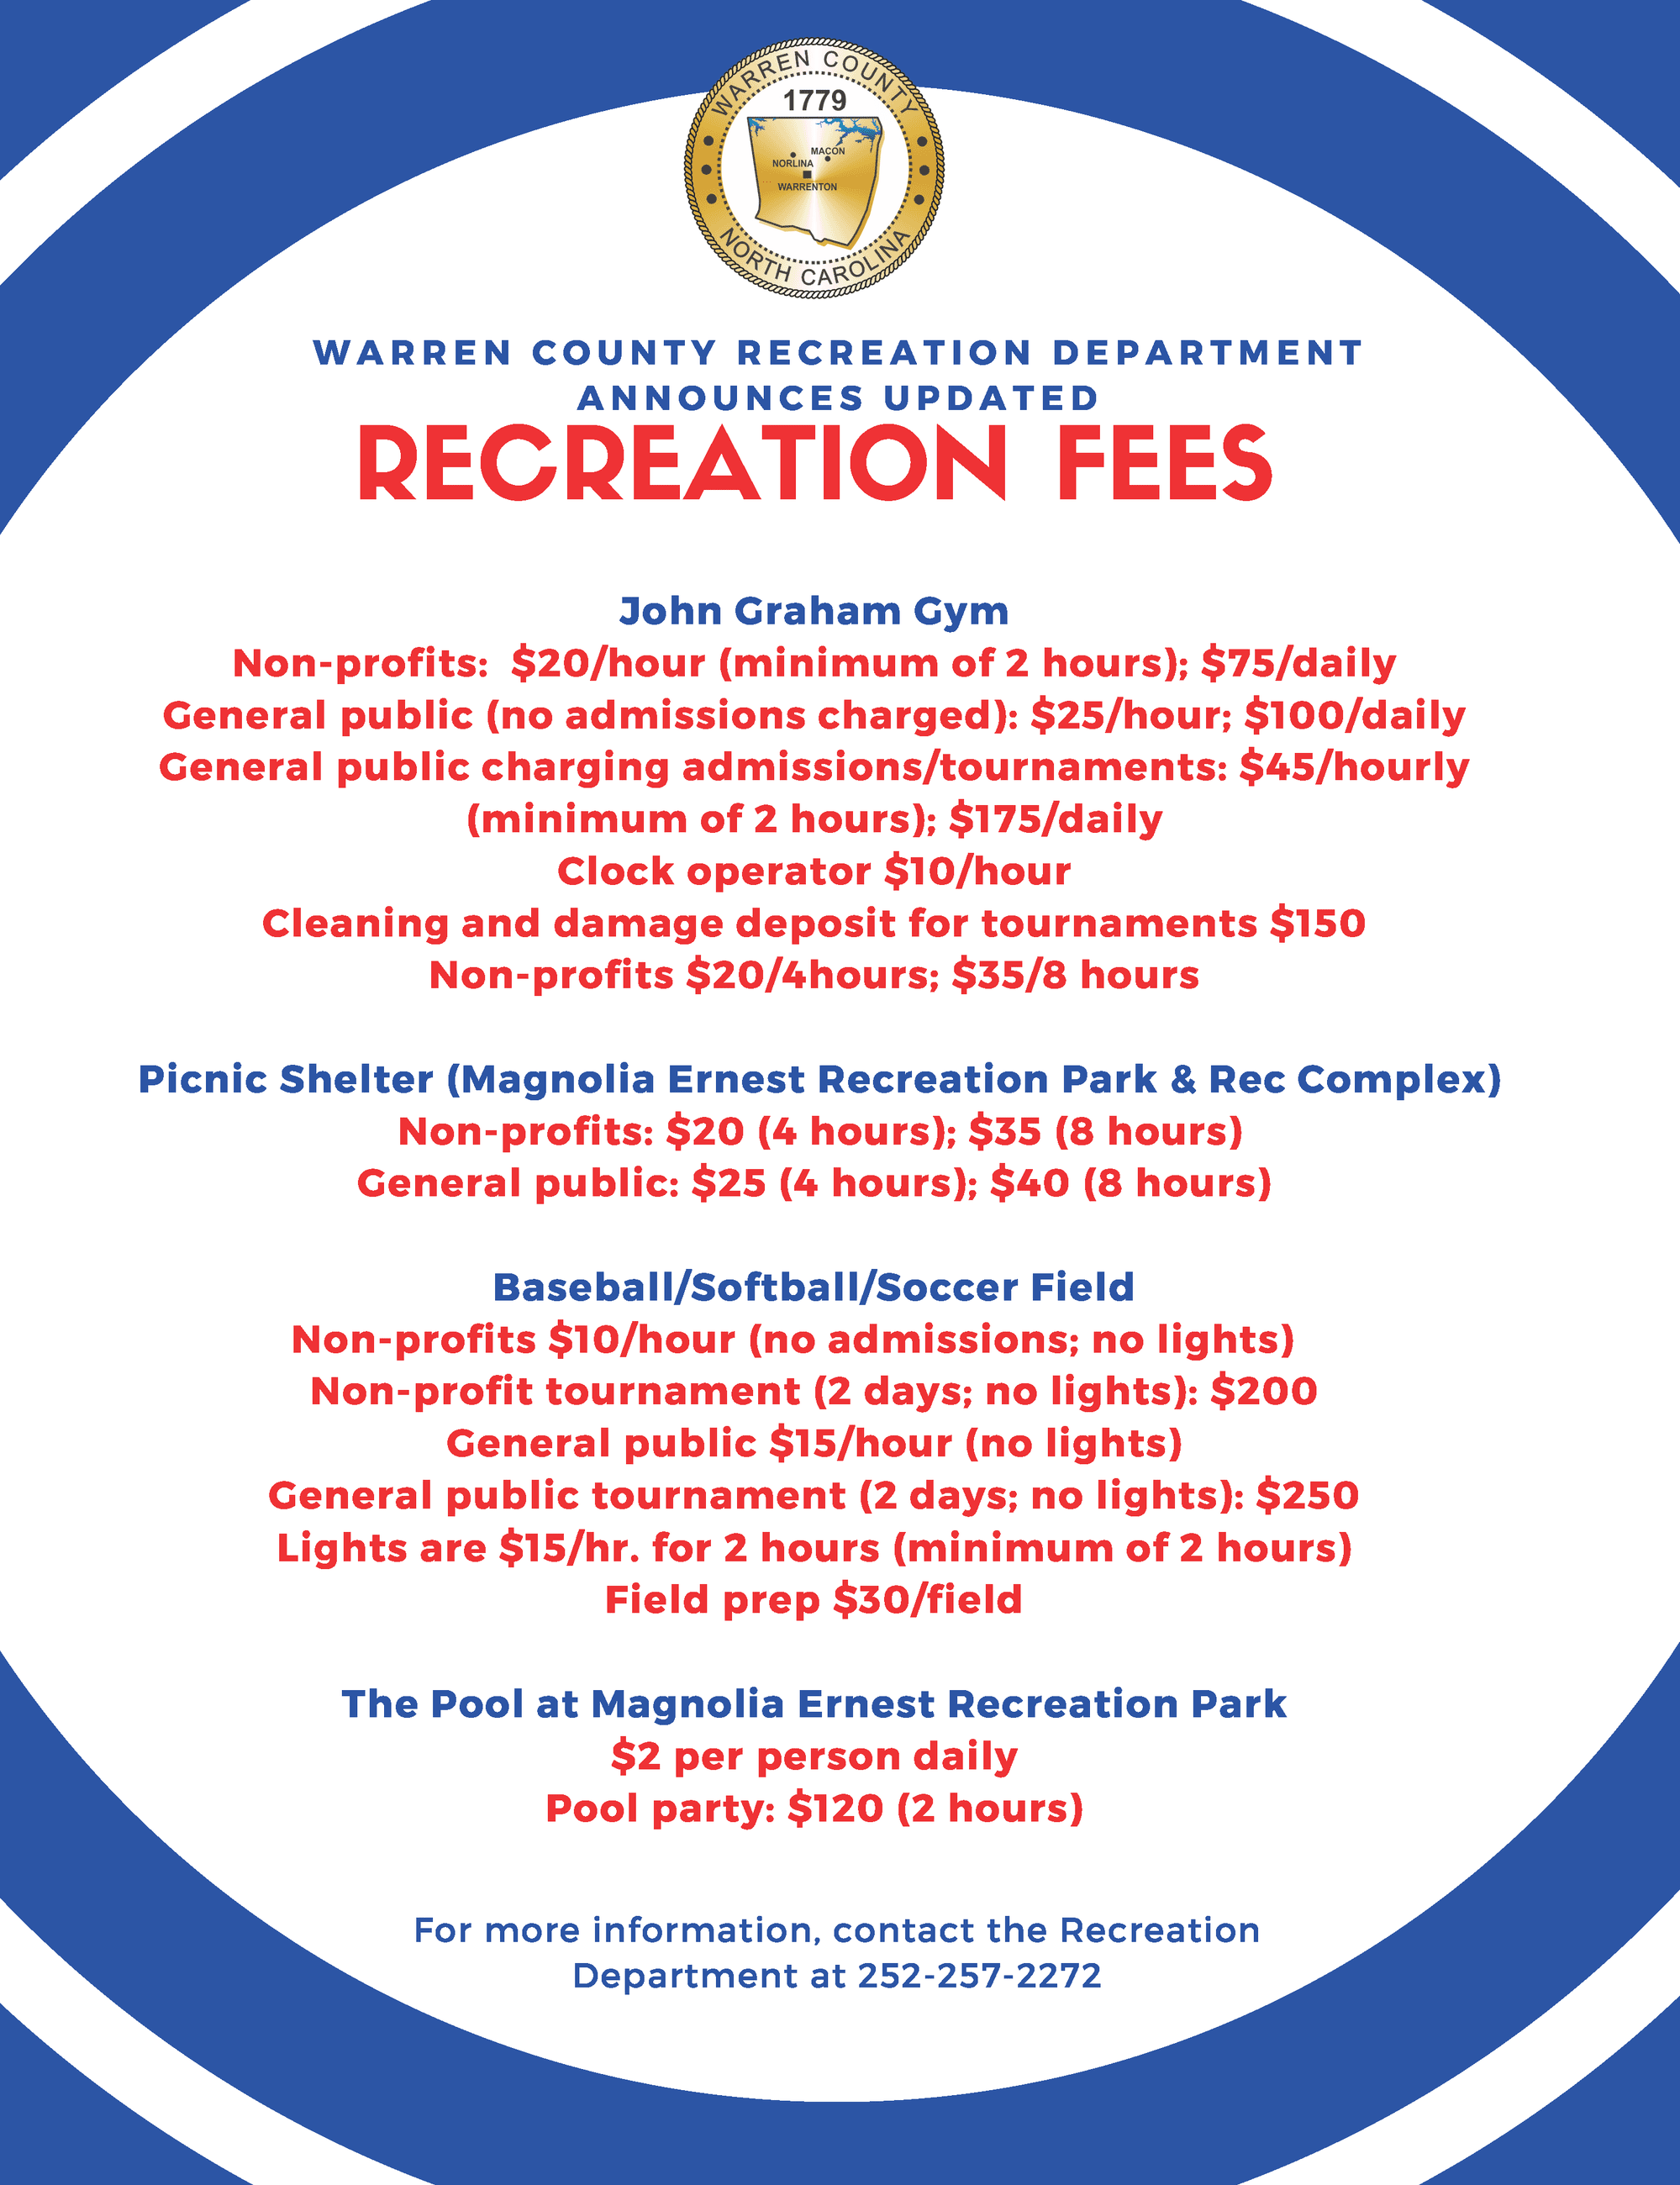 2020 Recreation Fees Update